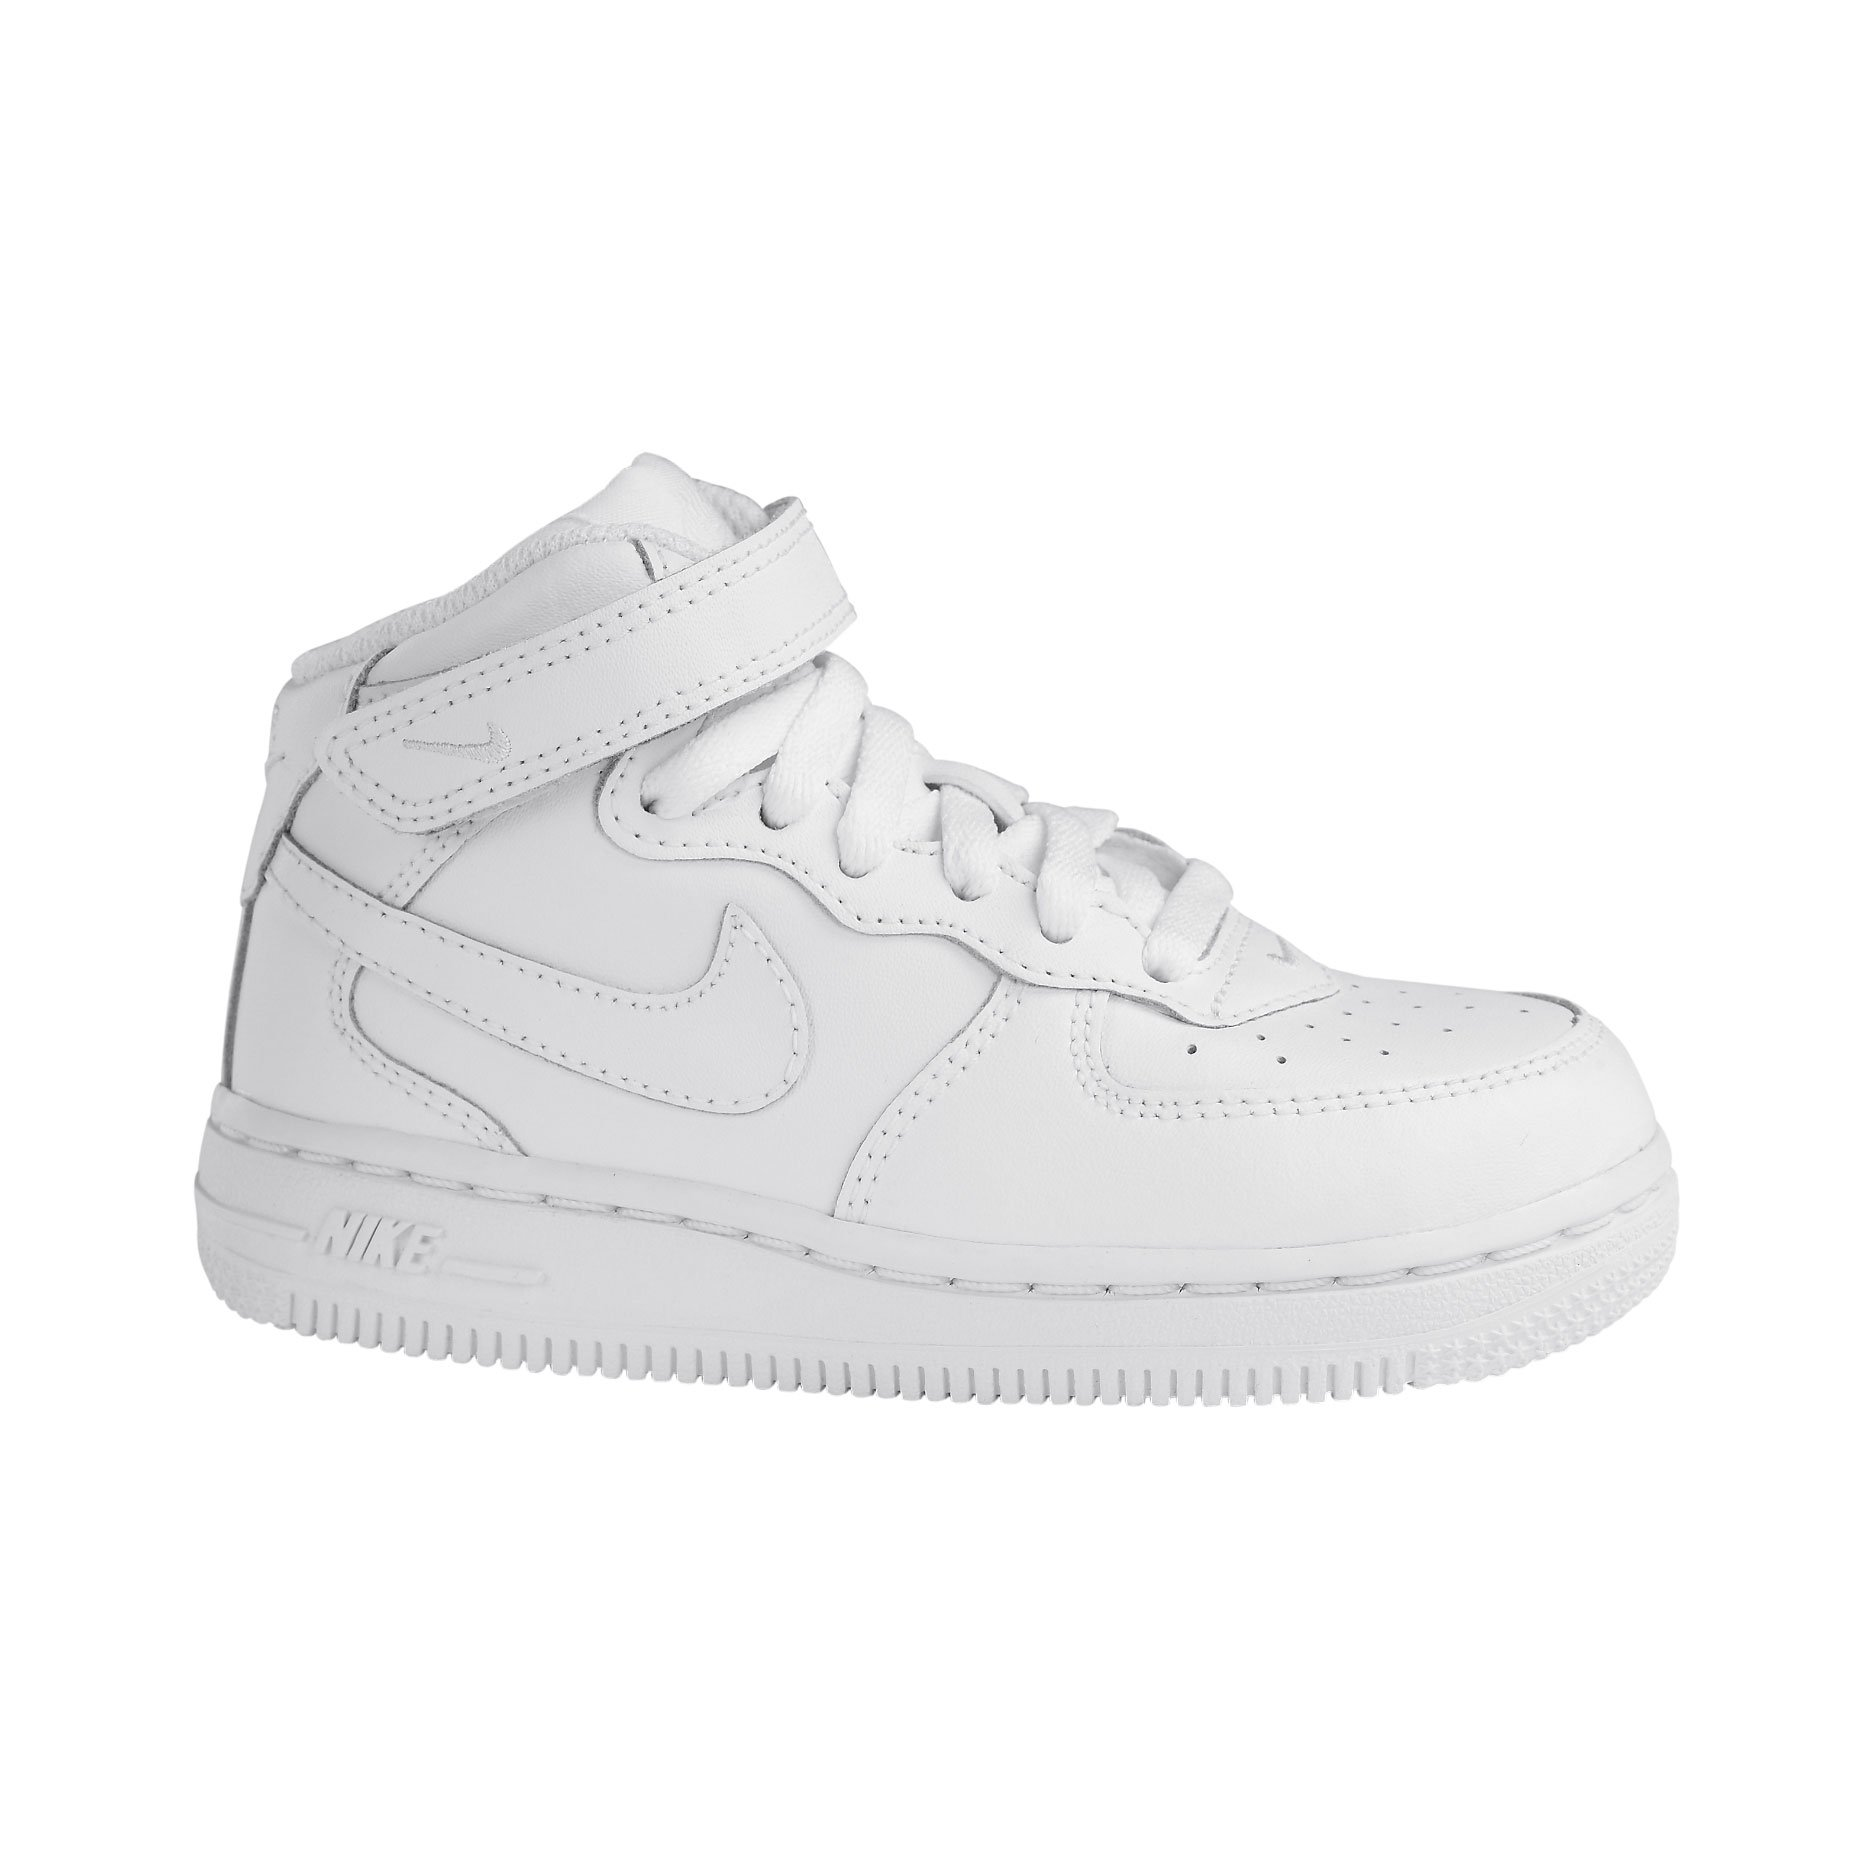 promo code aa7e6 5adae Nike Air Force 1 Mid Infant Shoe - Leisure   Sneakers   Nencini Sport